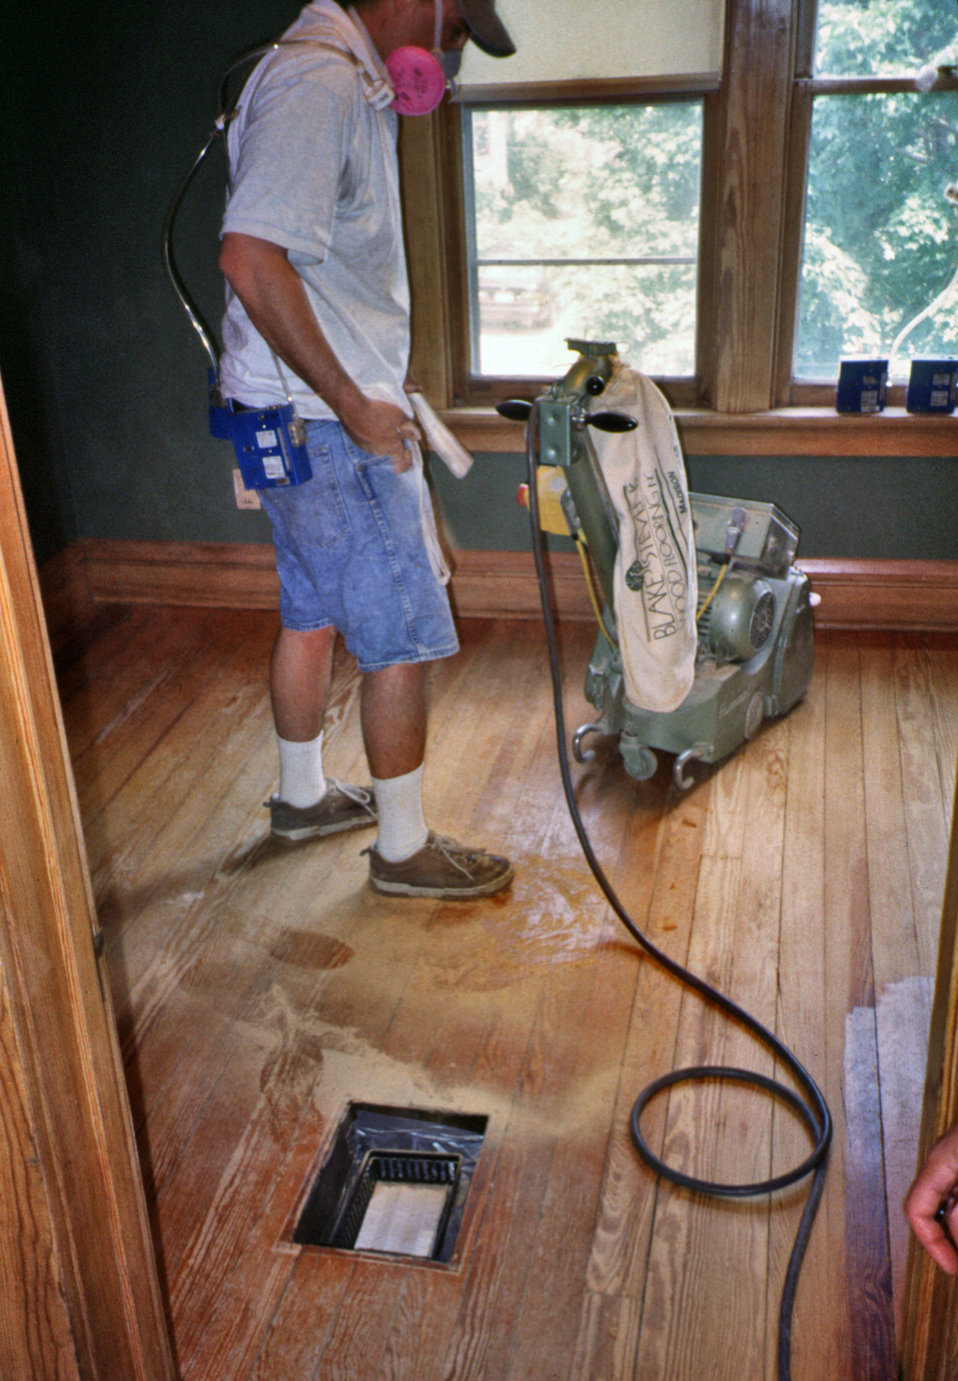 This 2000 photograph depicted a worker as he rough sanded a hardwood floor in a home in Madison, WI in preparation of refinishing its lead-b